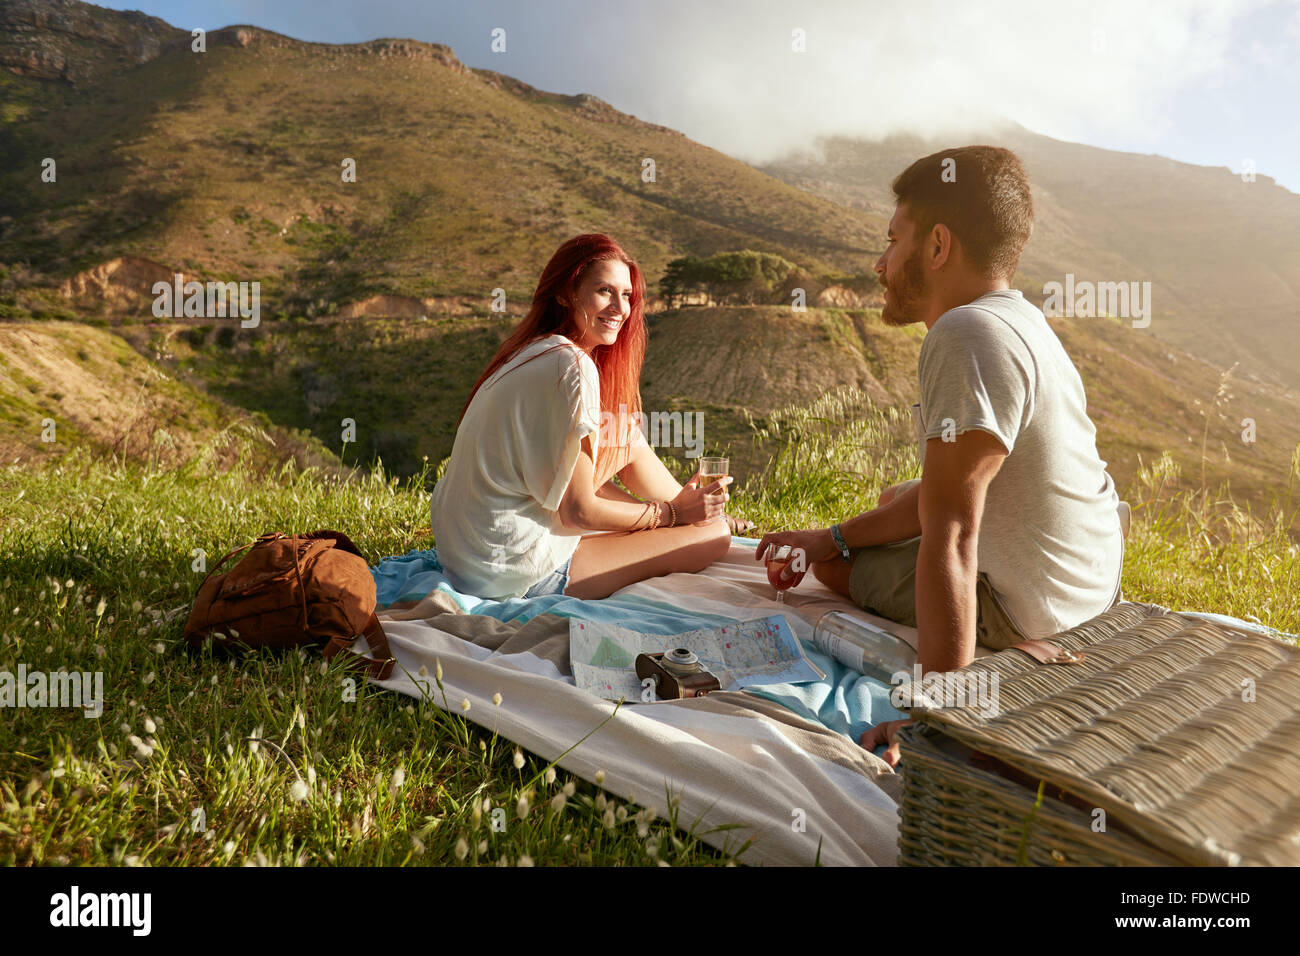 Young man and woman sitting on the grass during a picnic with glass of wine. Loving young couple having a conversation - Stock Image